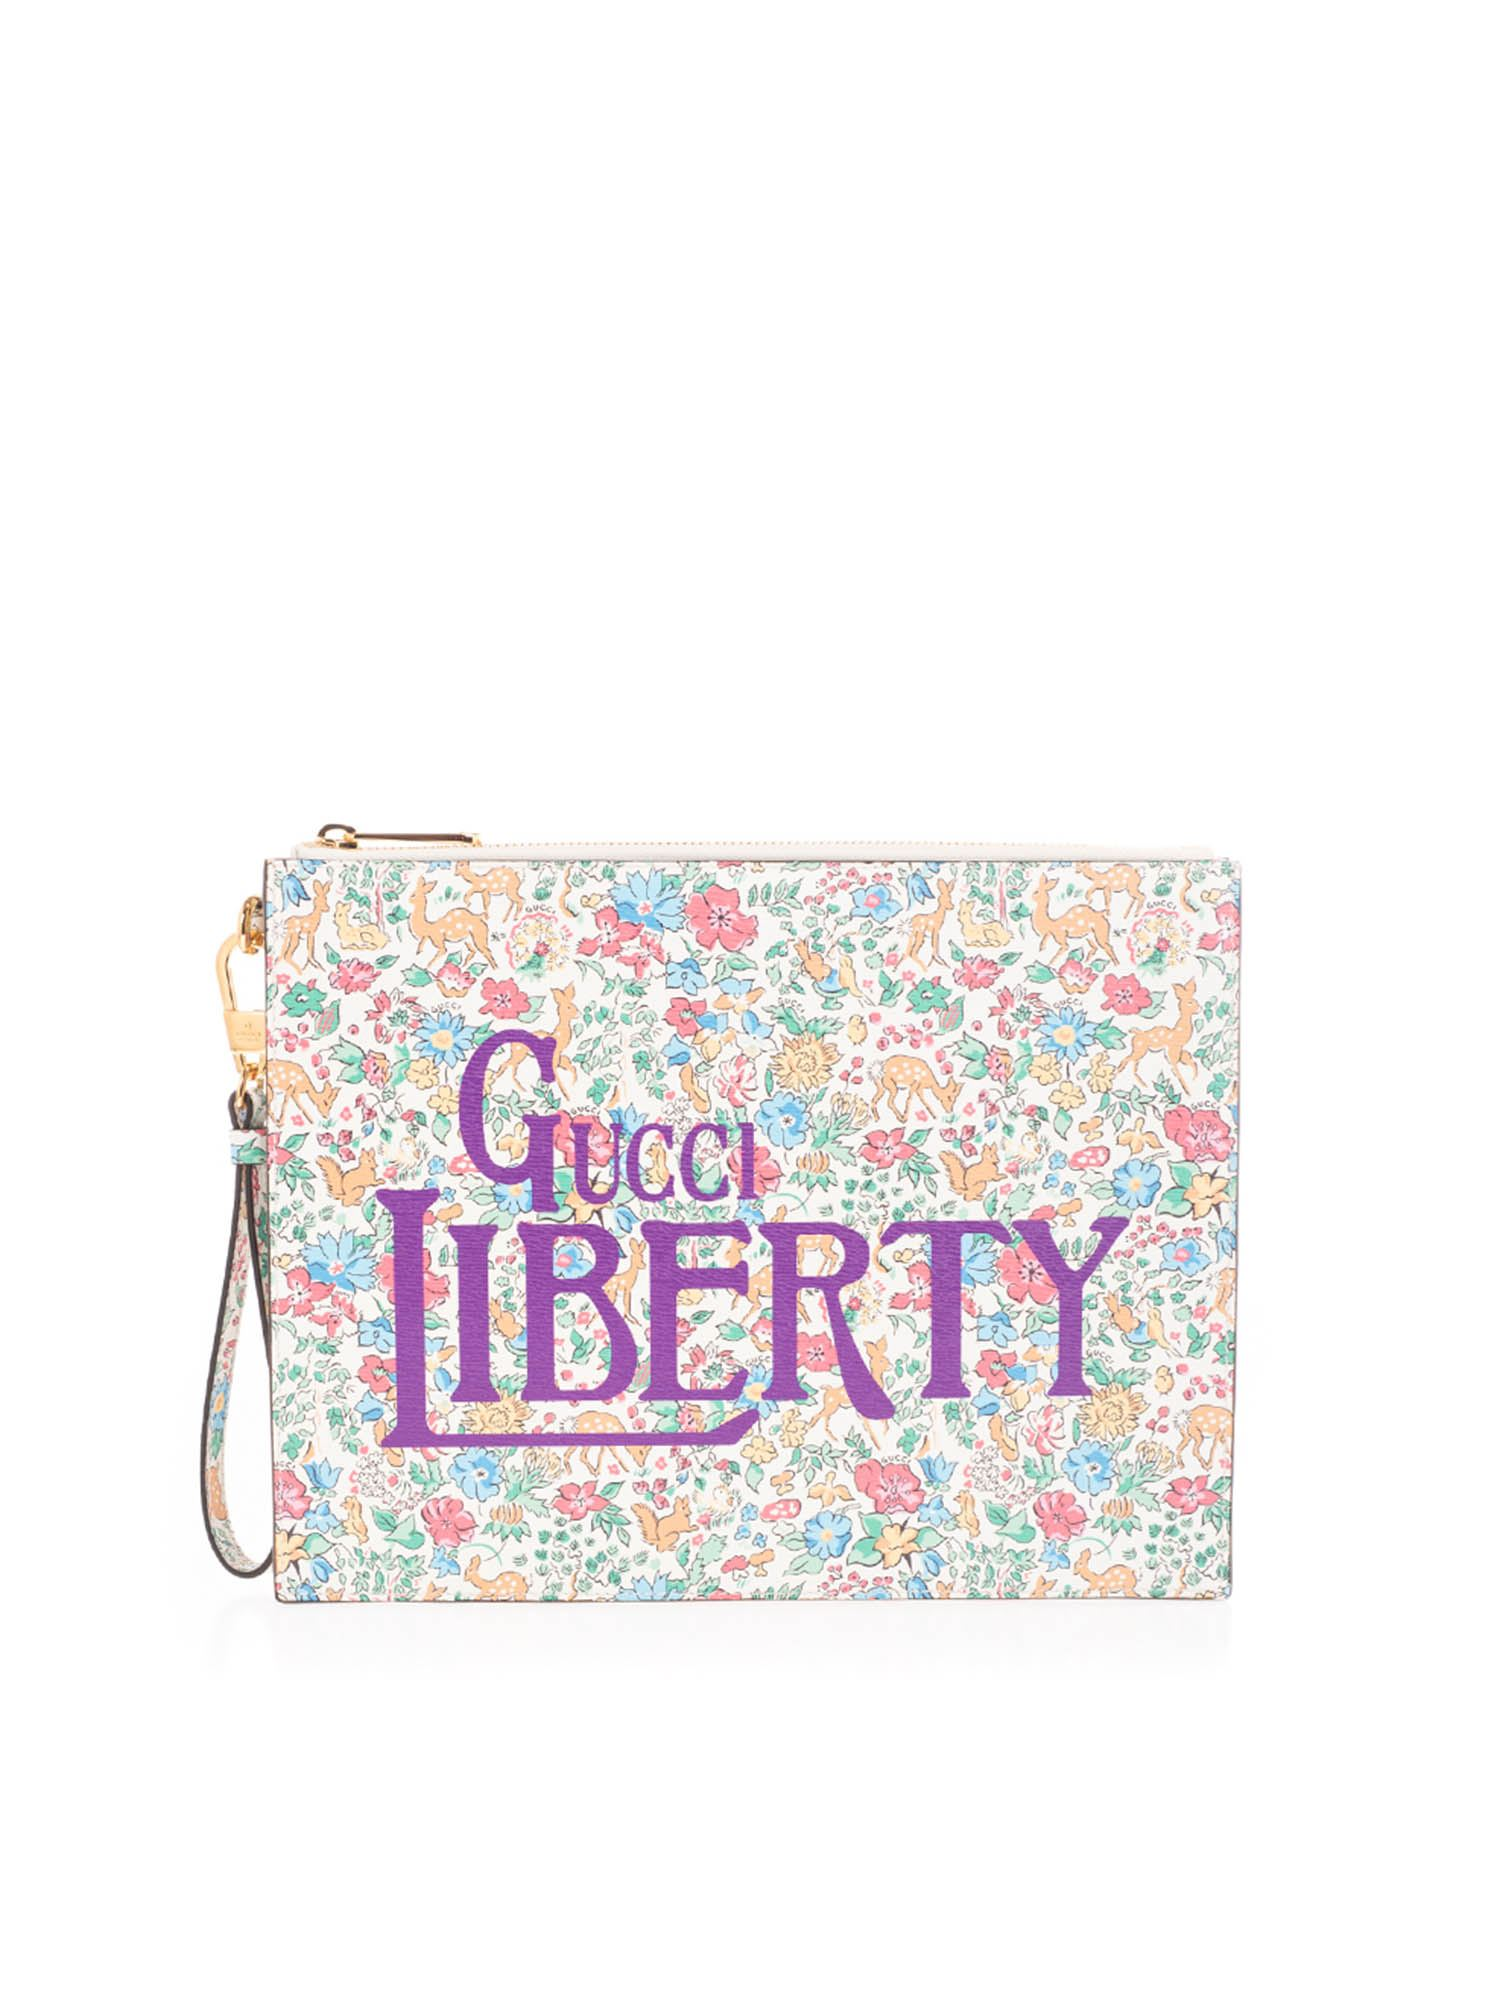 Gucci FLORAL PRINT CLUTCH IN MULTICOLOR